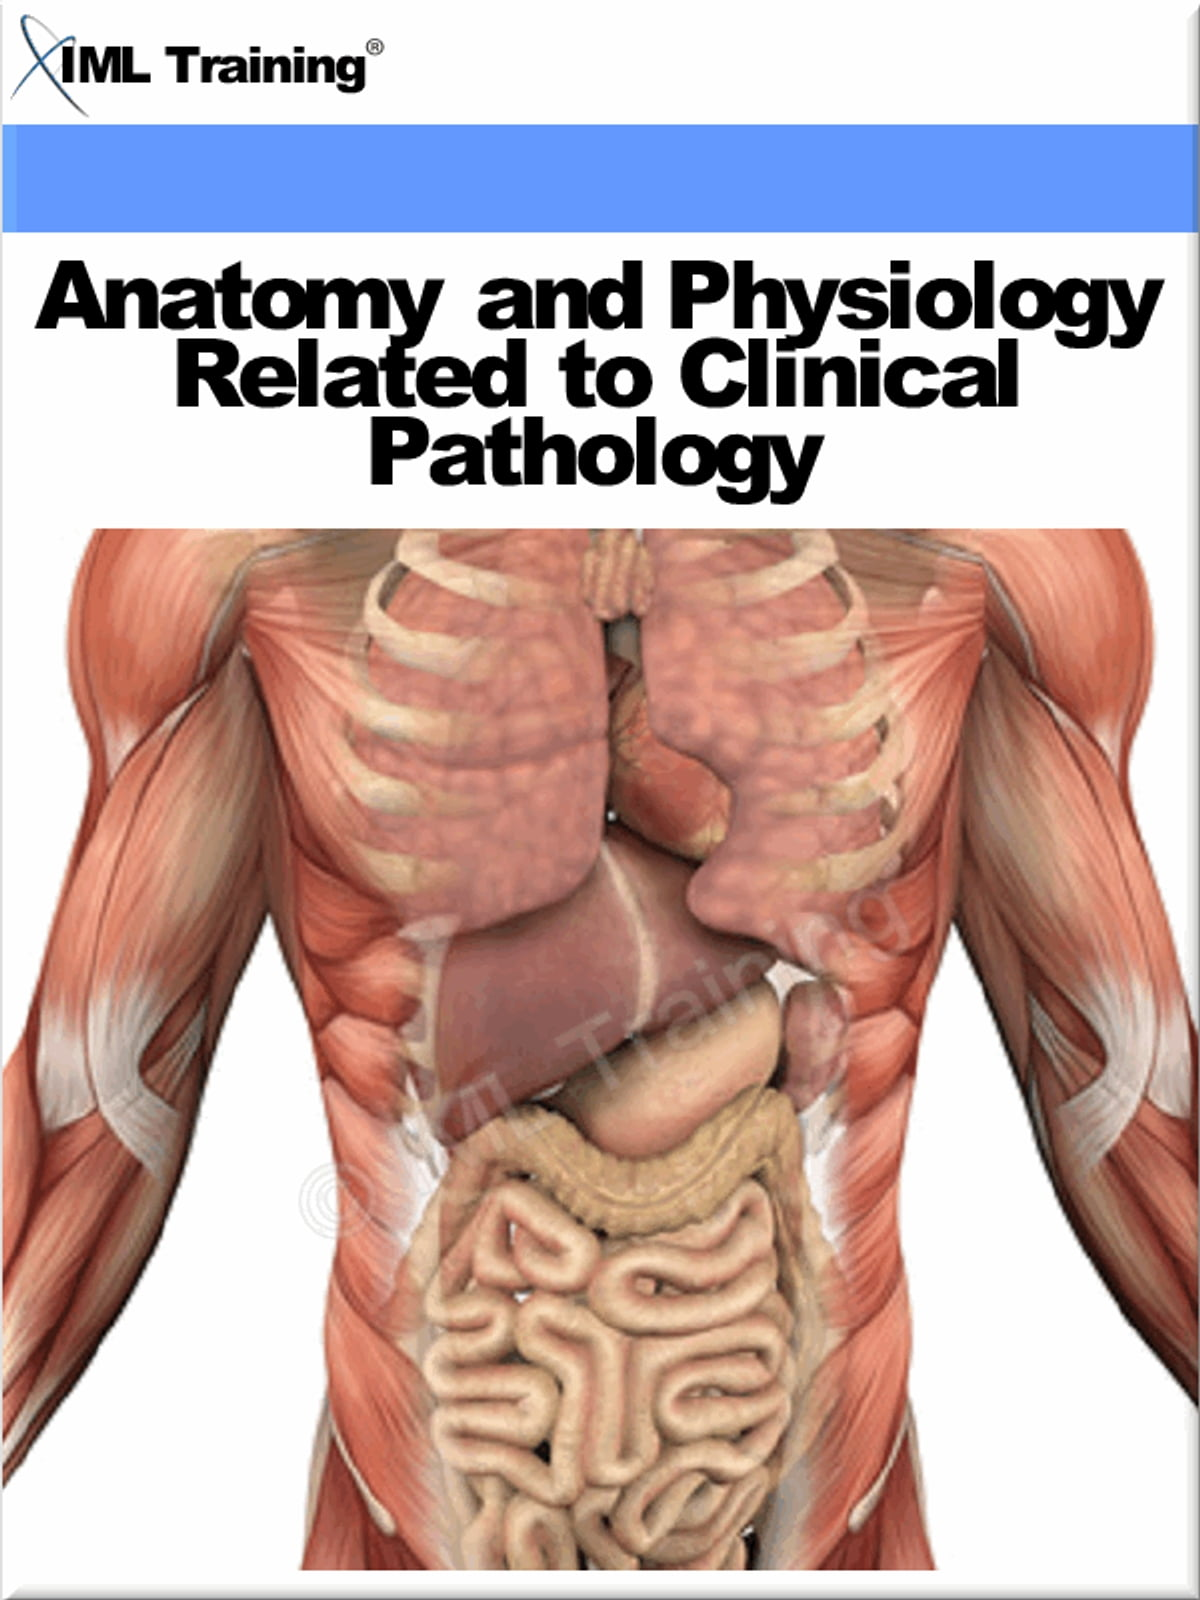 Pdf 7297wnload Human Anatomy Physiology Best Books Resources